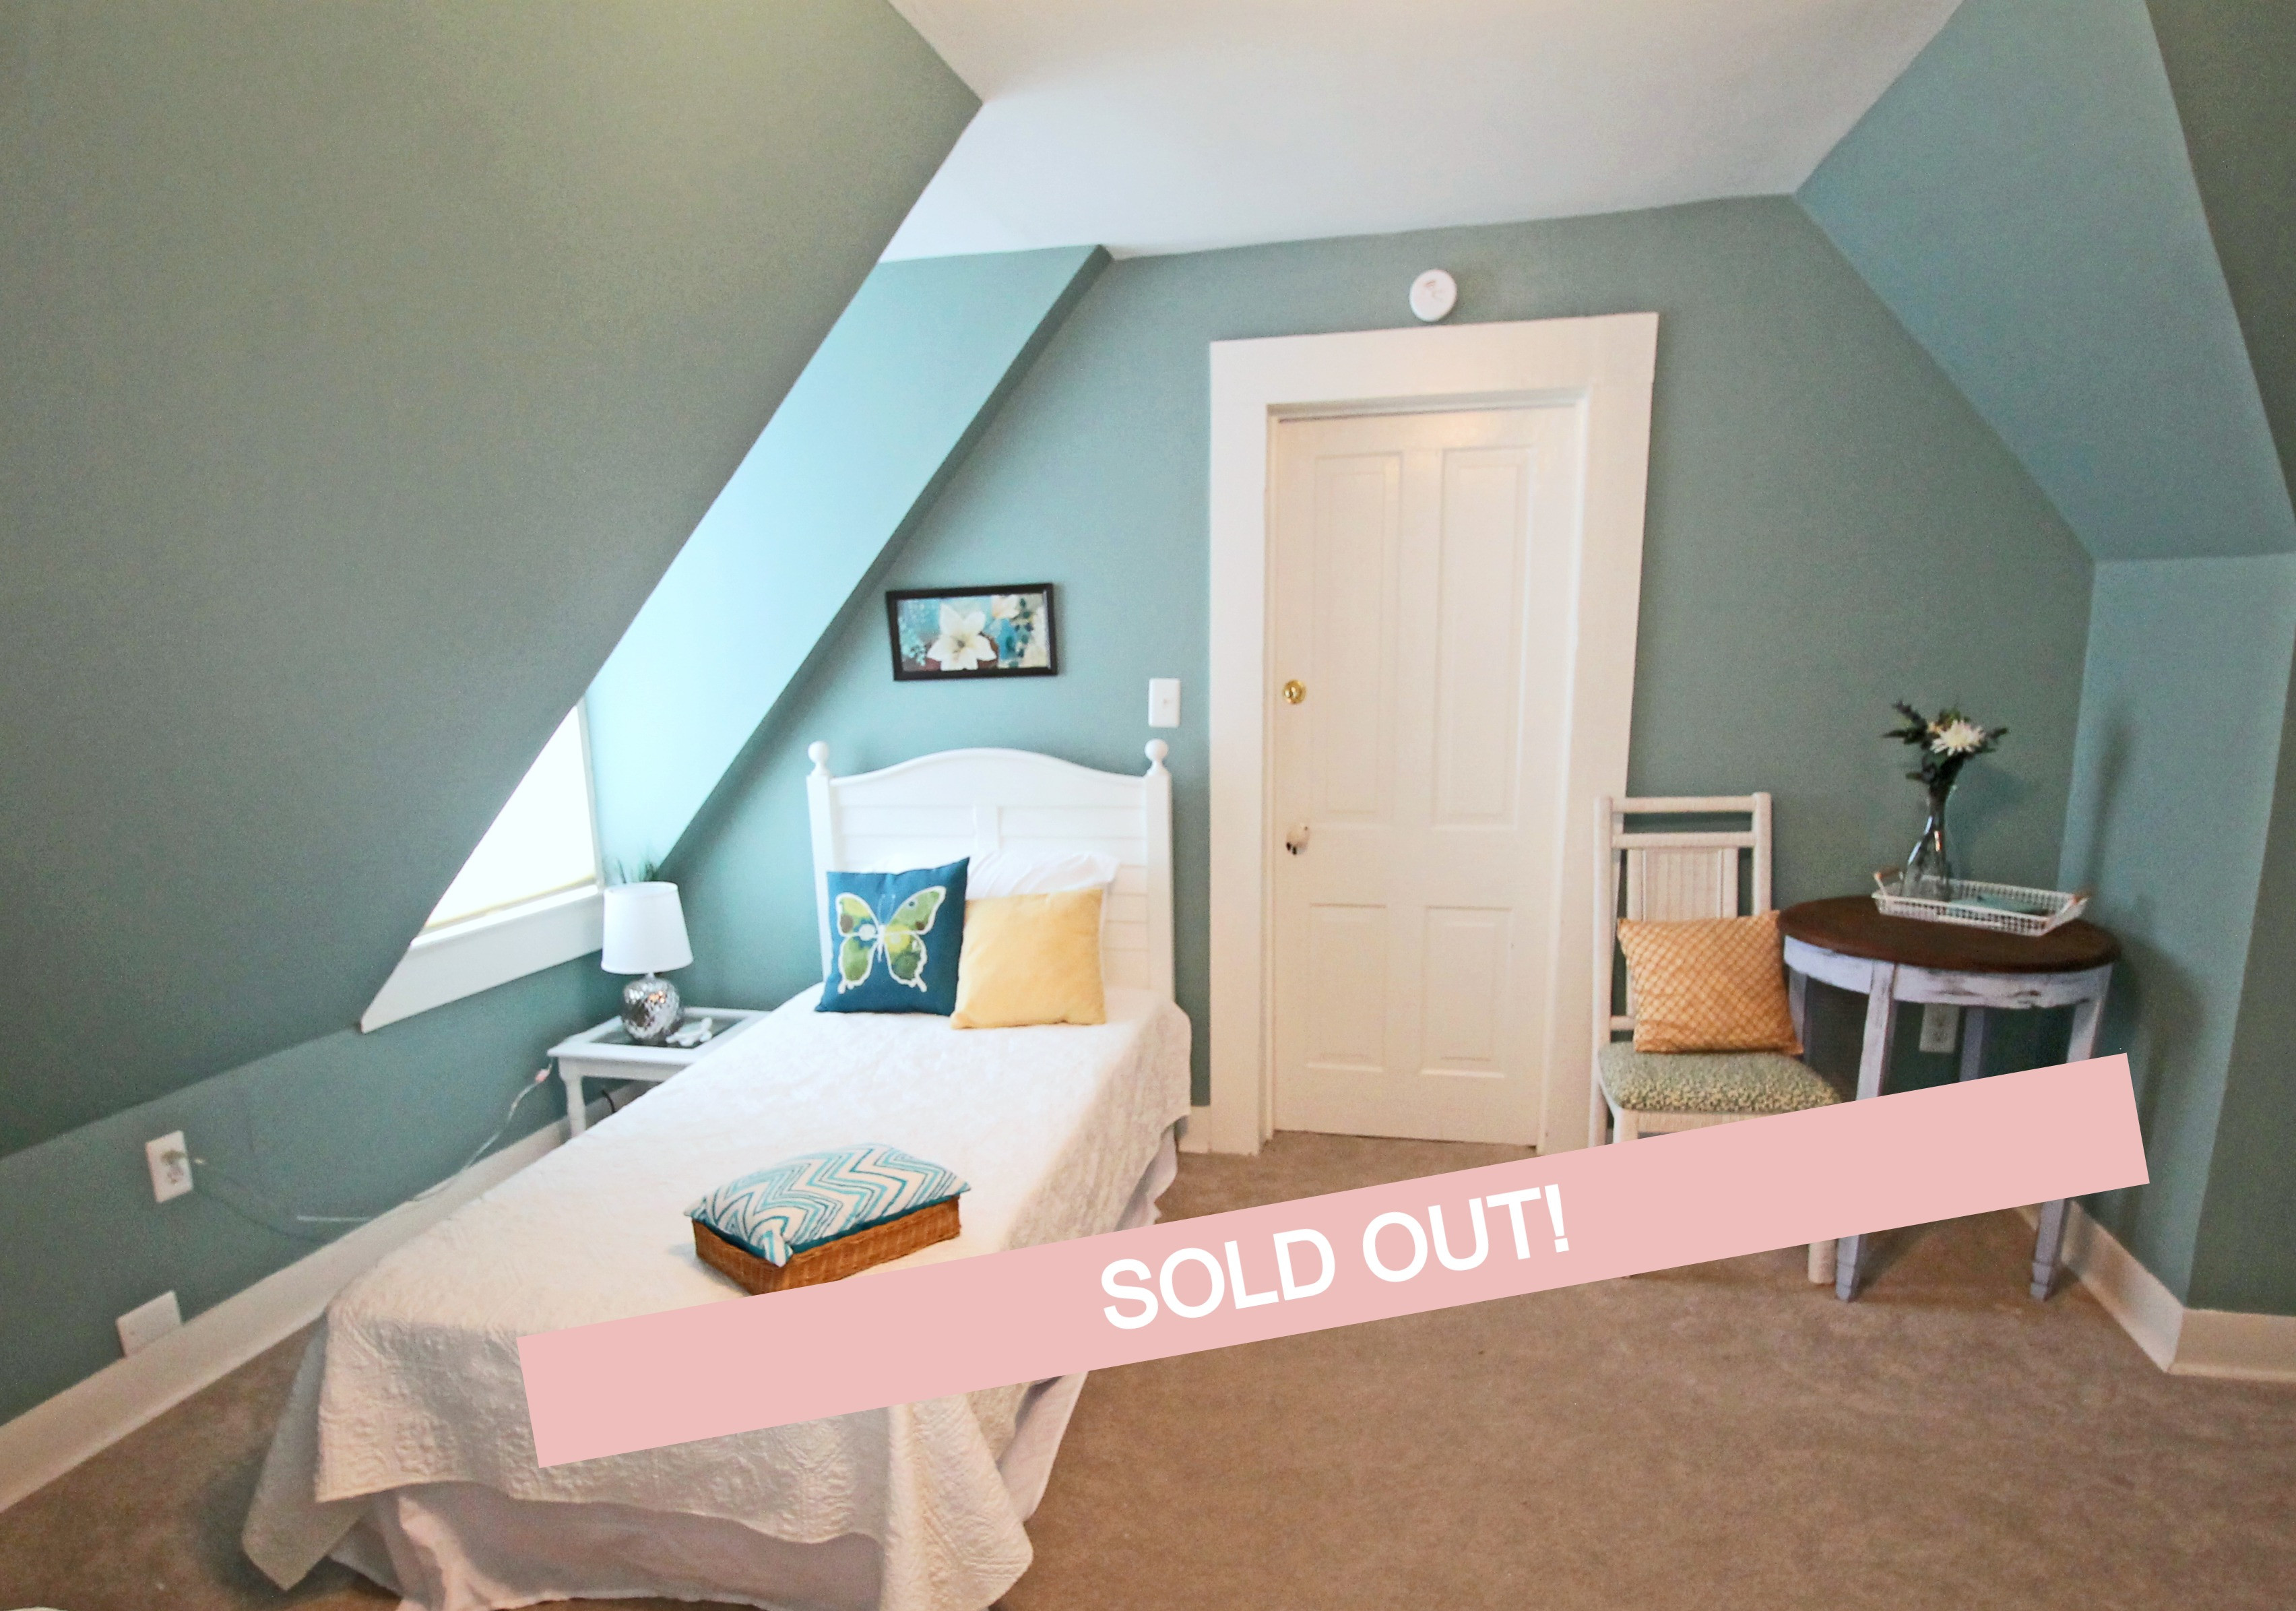 Sold out sept 13-16 Upstairs Shared Room